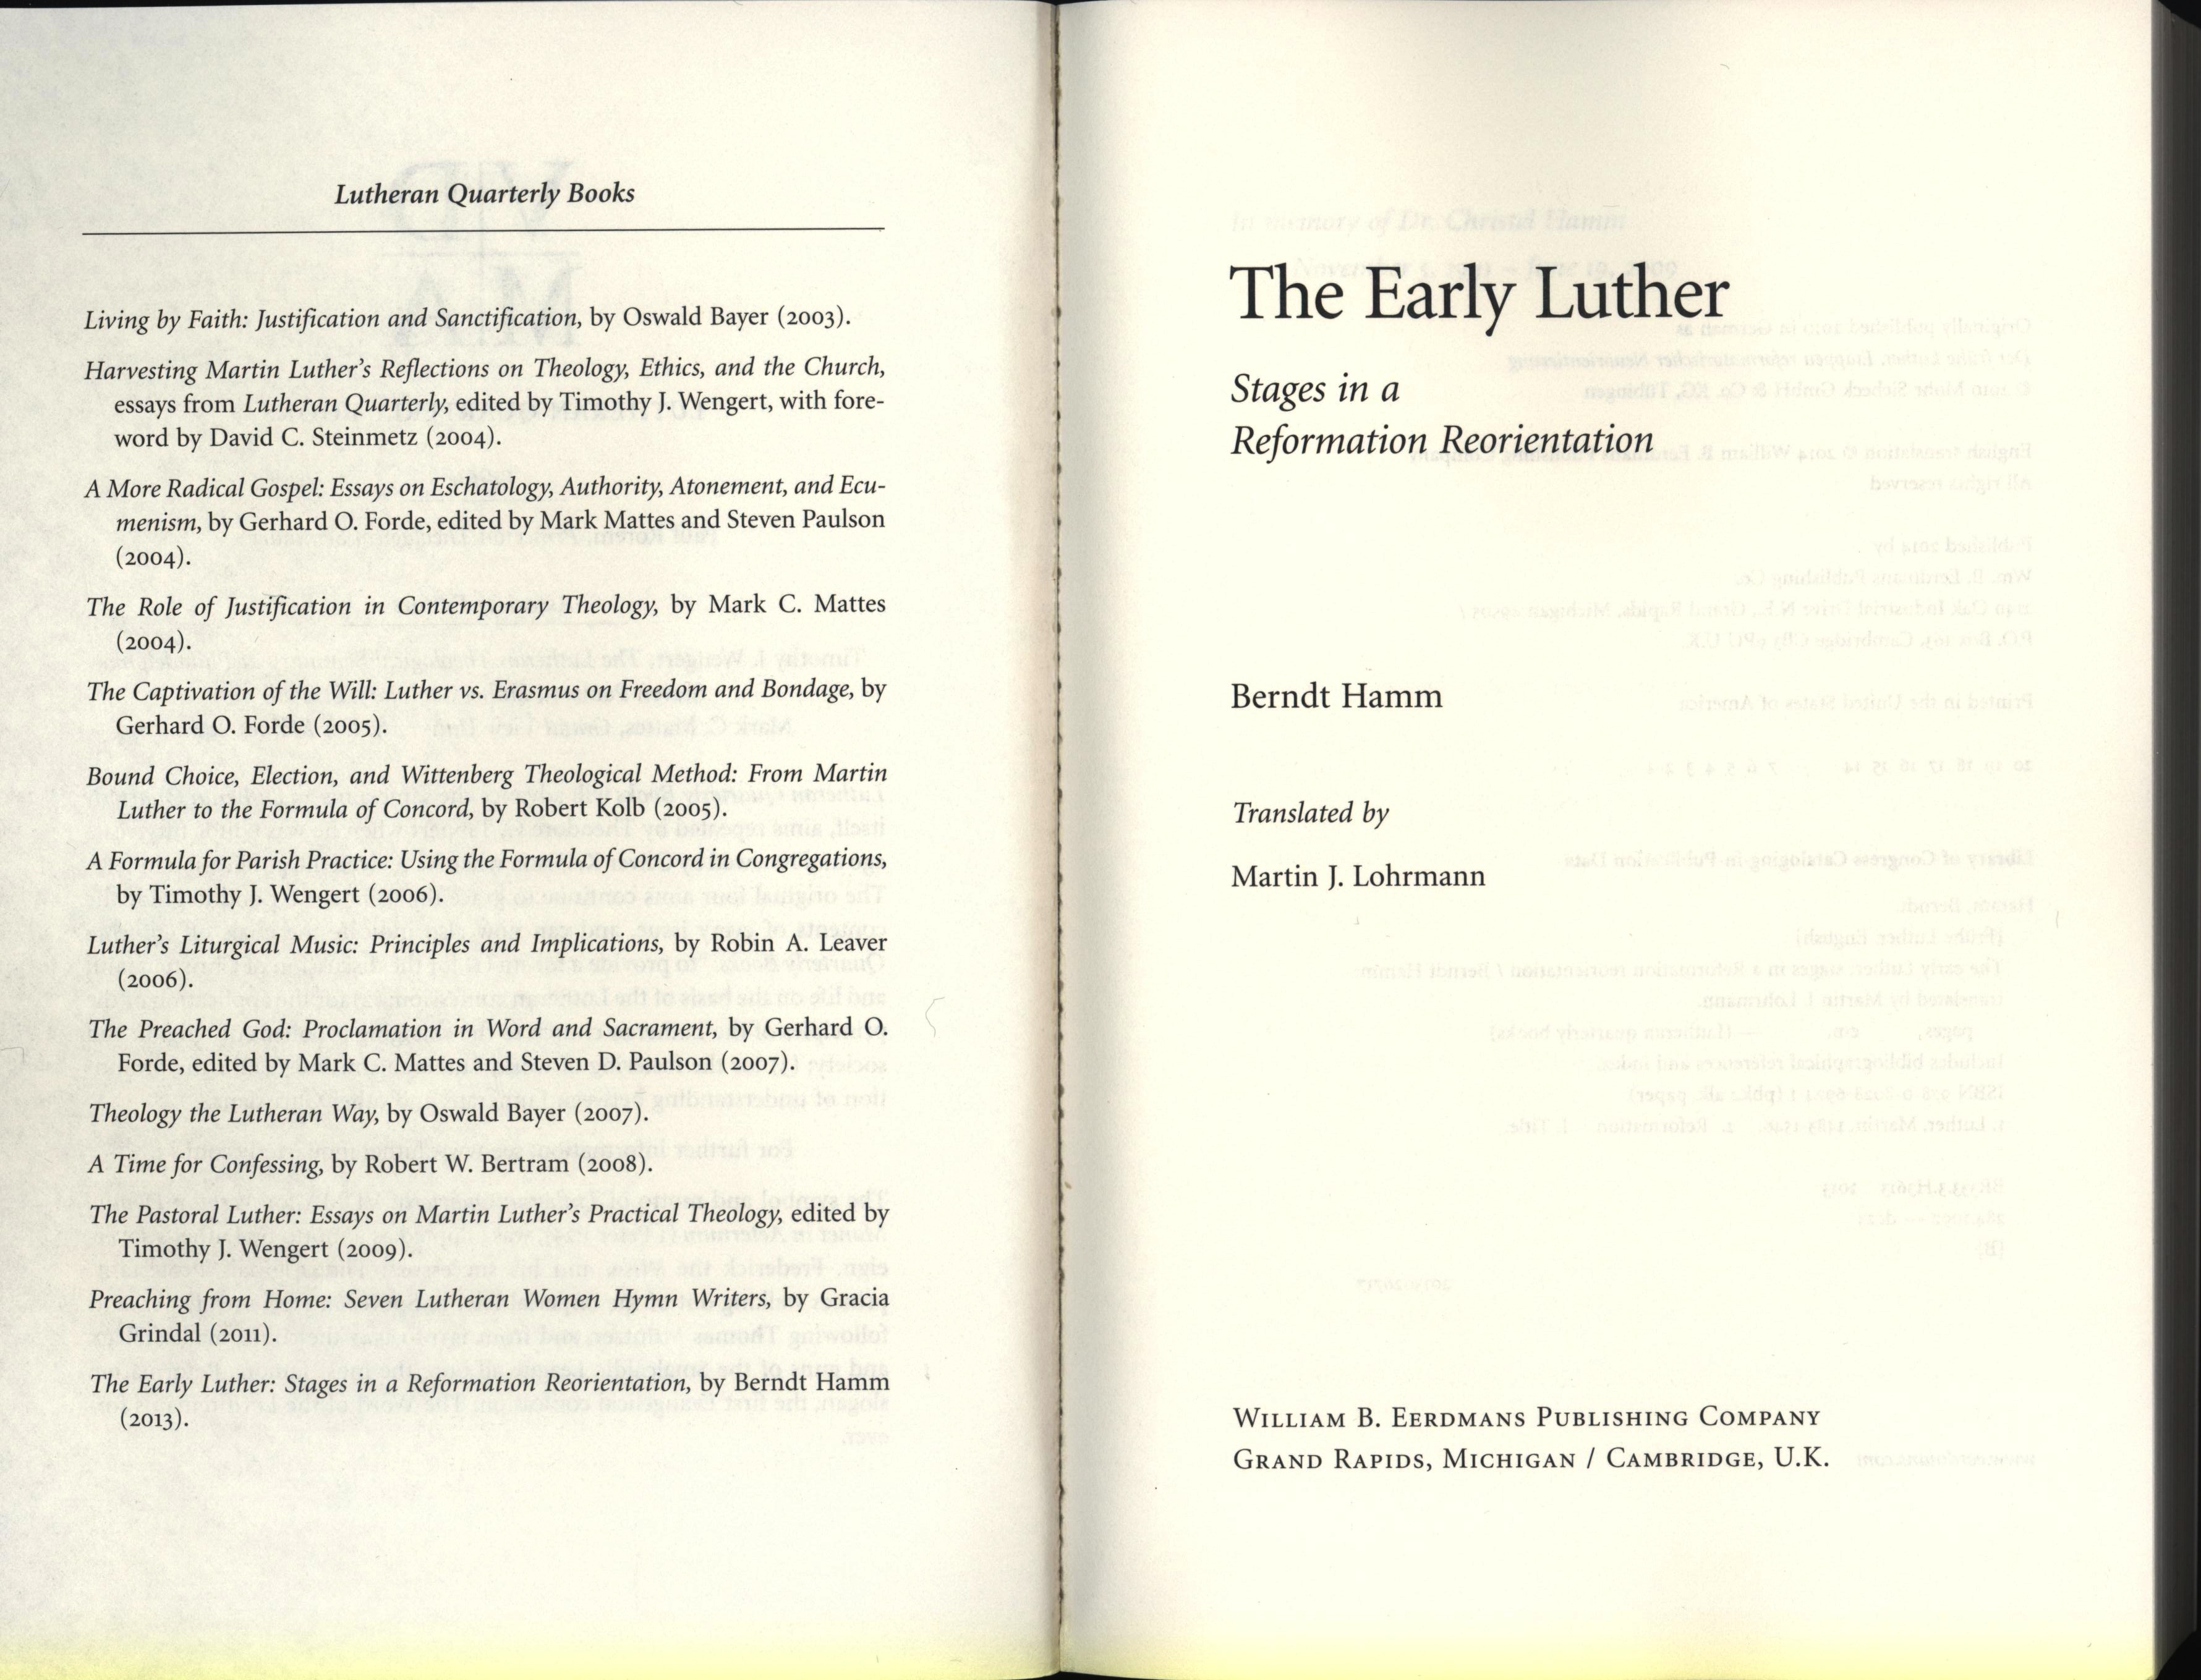 lutheran quarterly book list early luther